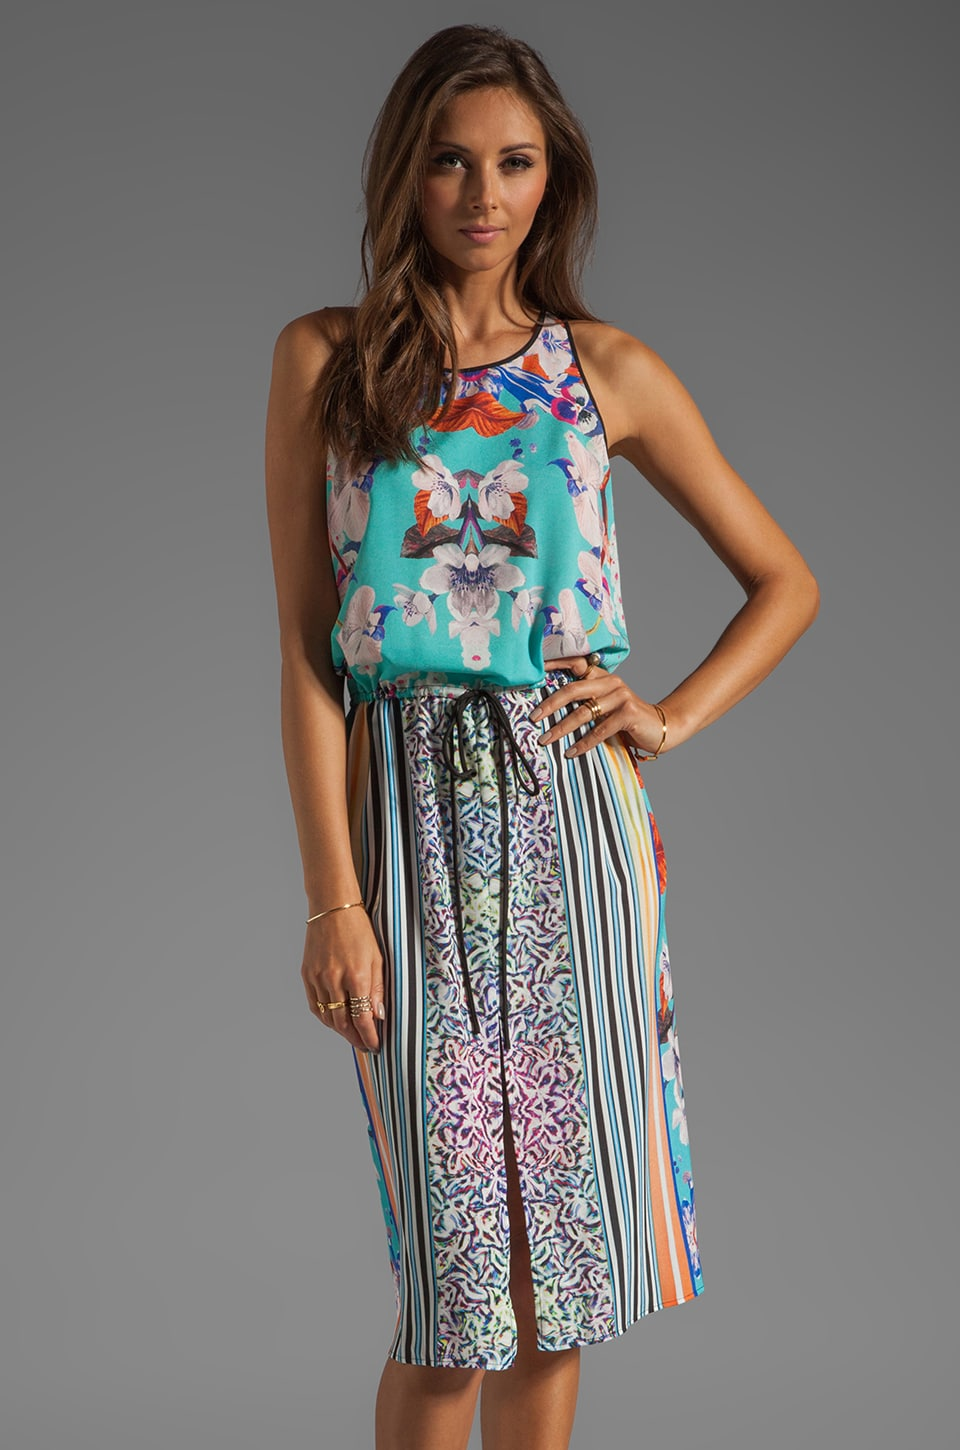 Clover Canyon Prism Orchid Dress in Turquoise